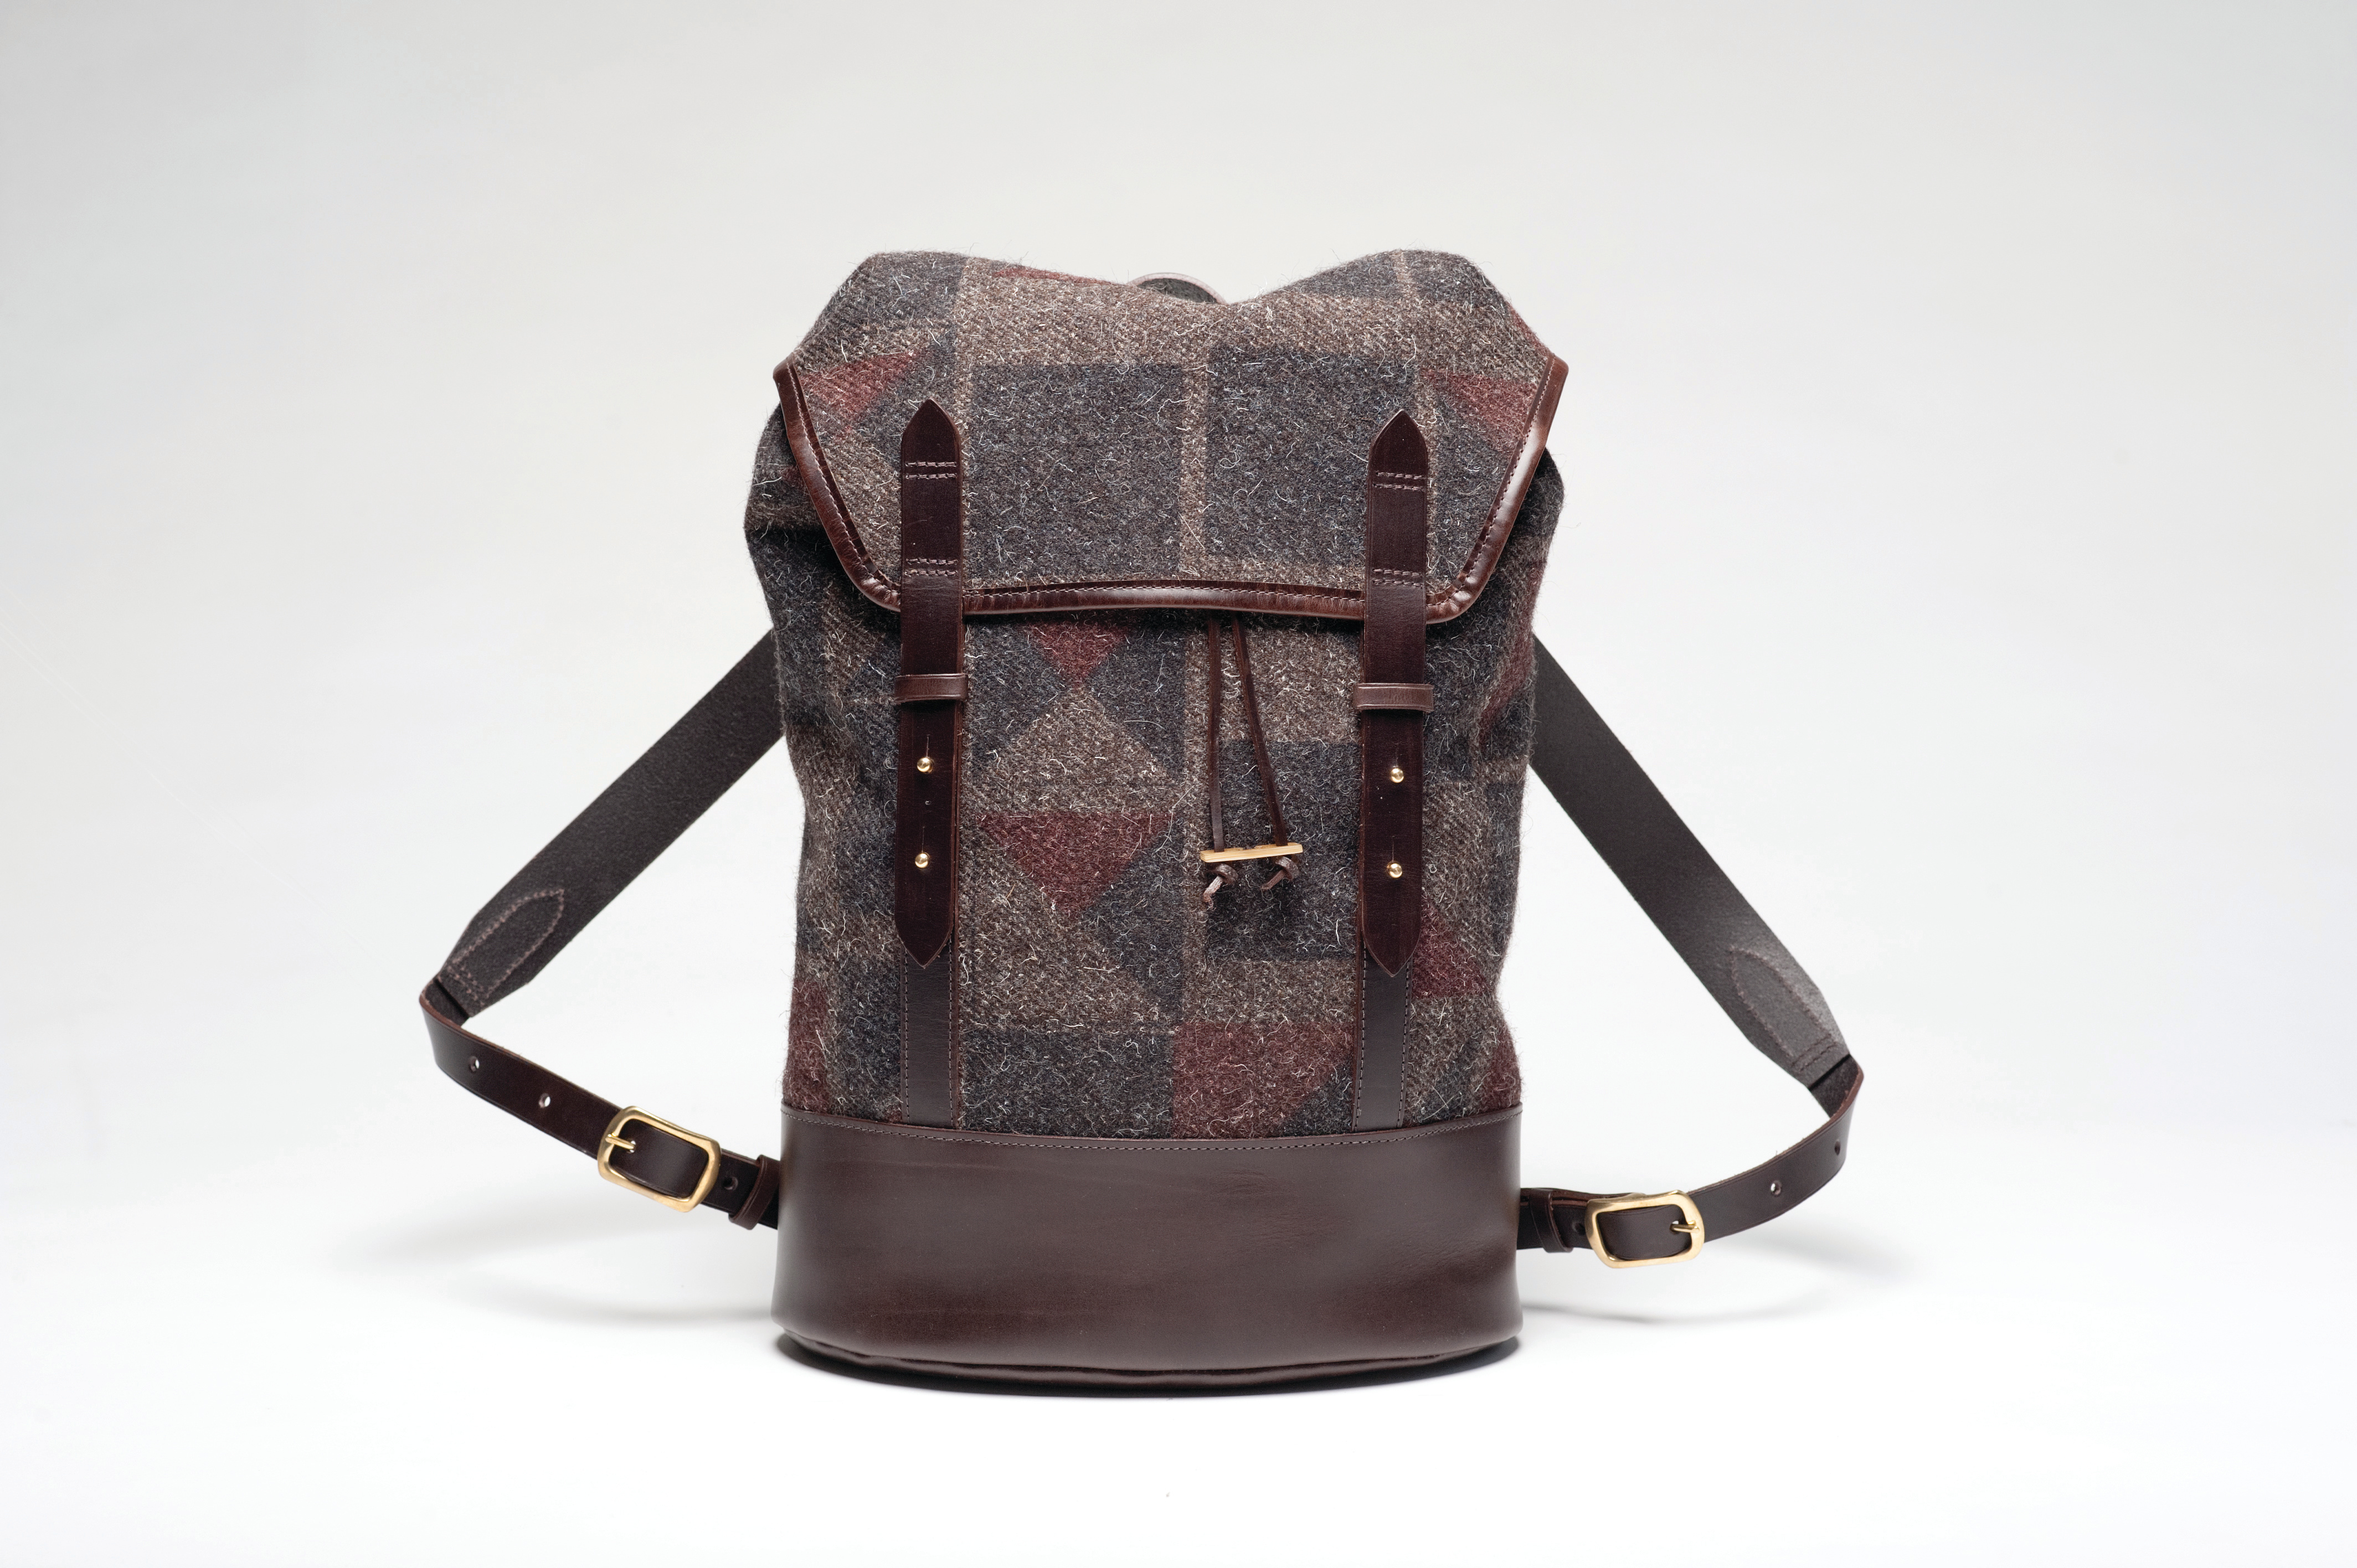 CHERCHBI Black Sail Rucksack in Tamasyn Gambell Broken Square printed Herdwyck No.10 tweed w Brown L